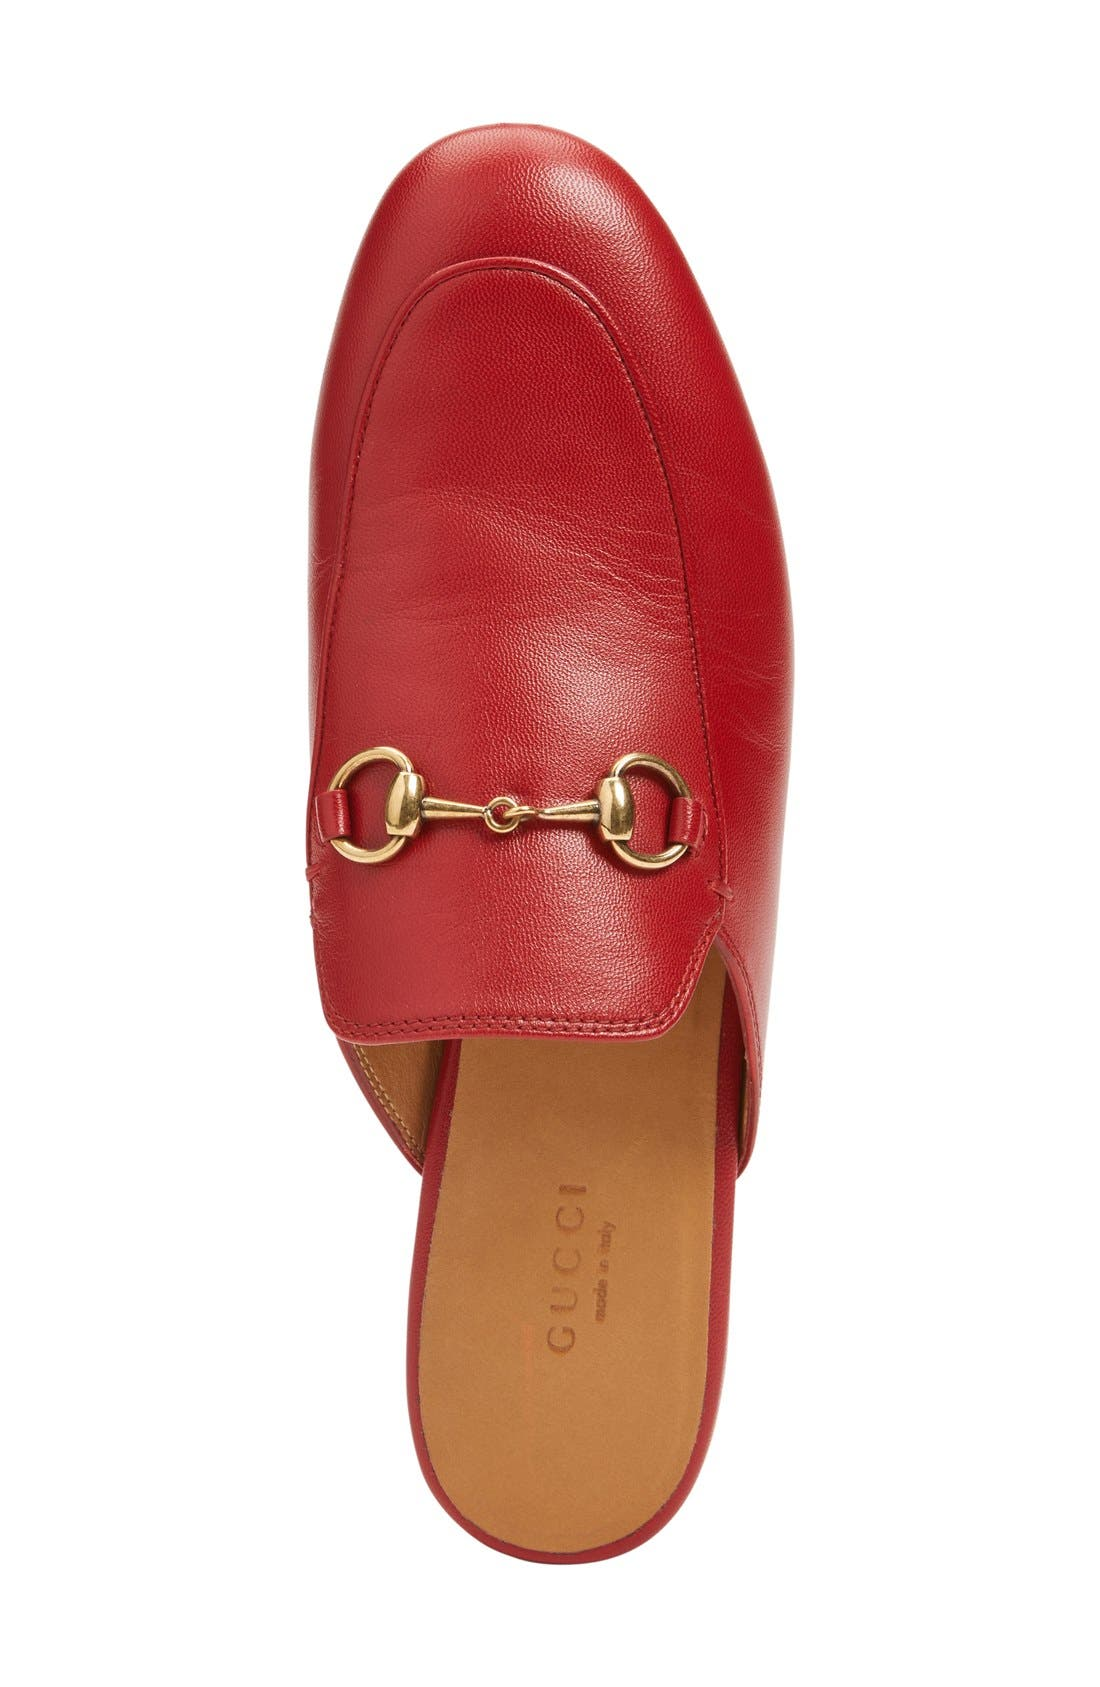 GUCCI, Princetown Loafer Mule, Alternate thumbnail 4, color, RED LEATHER